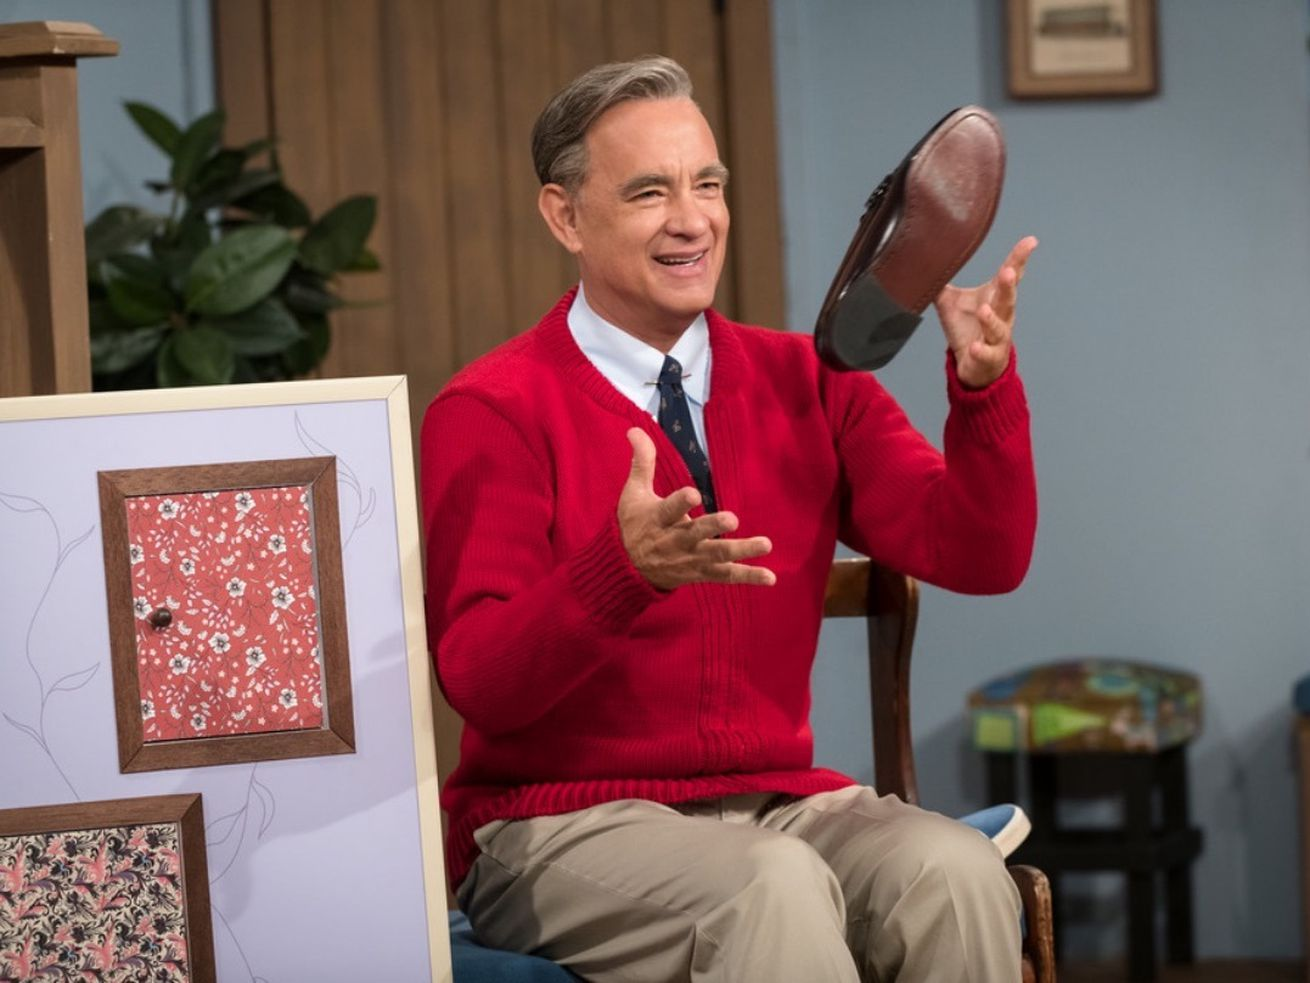 Tom Hanks tosses his shoe as Fred Rogers in A Beautiful Day in the Neighborhood, due out in November.